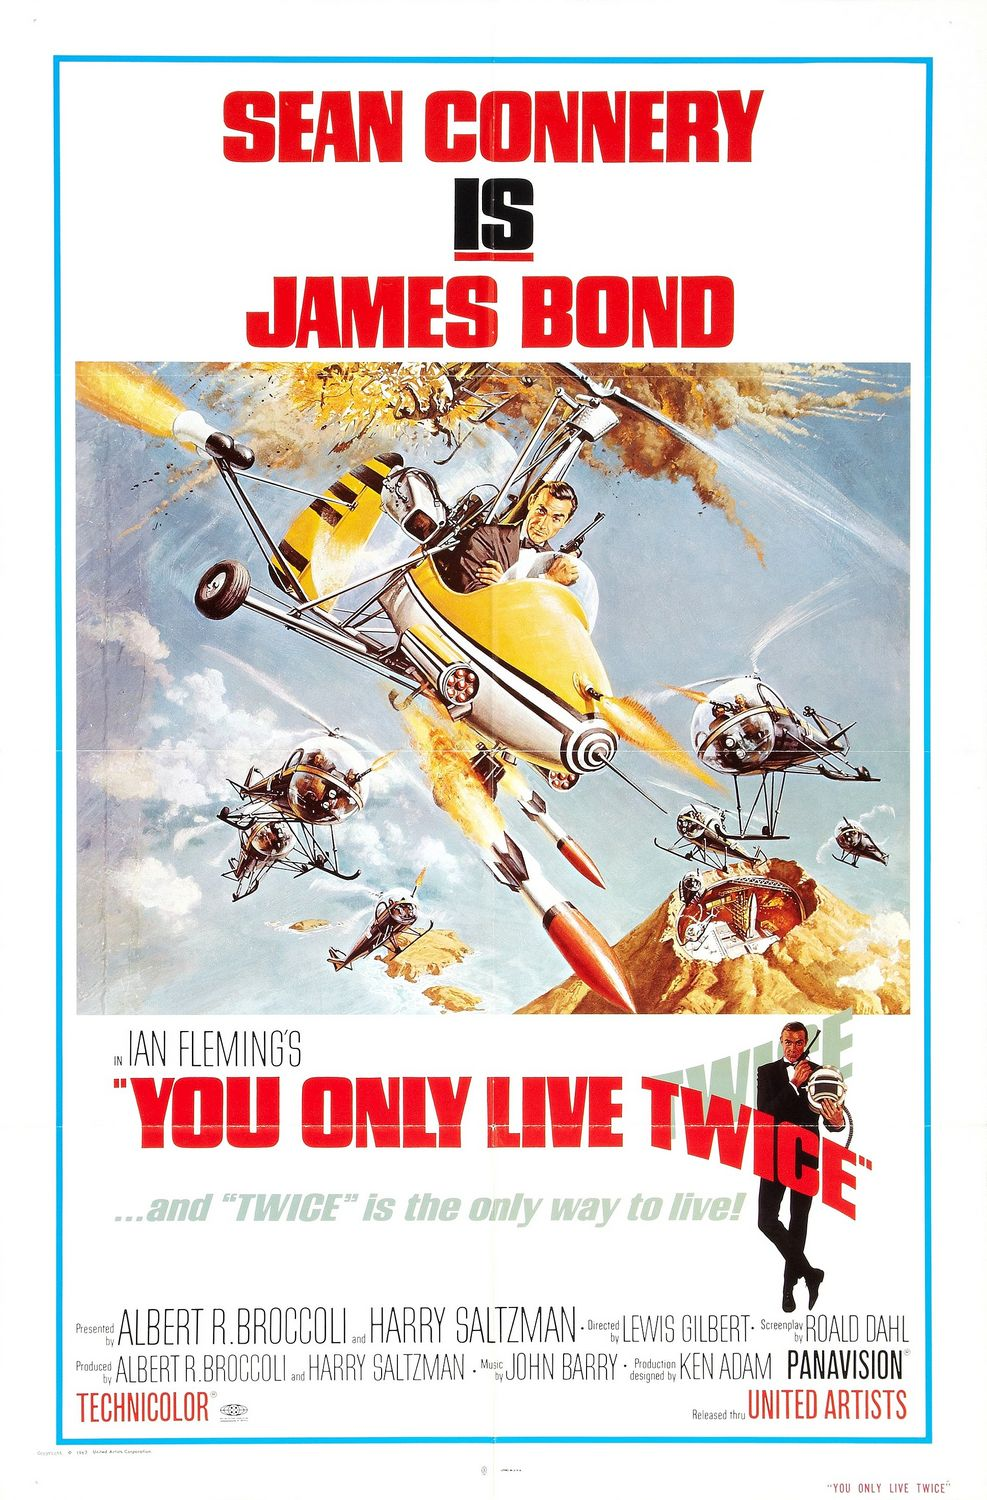 Spy - 1967 - 007 Si vive solo due volte - You only live twice